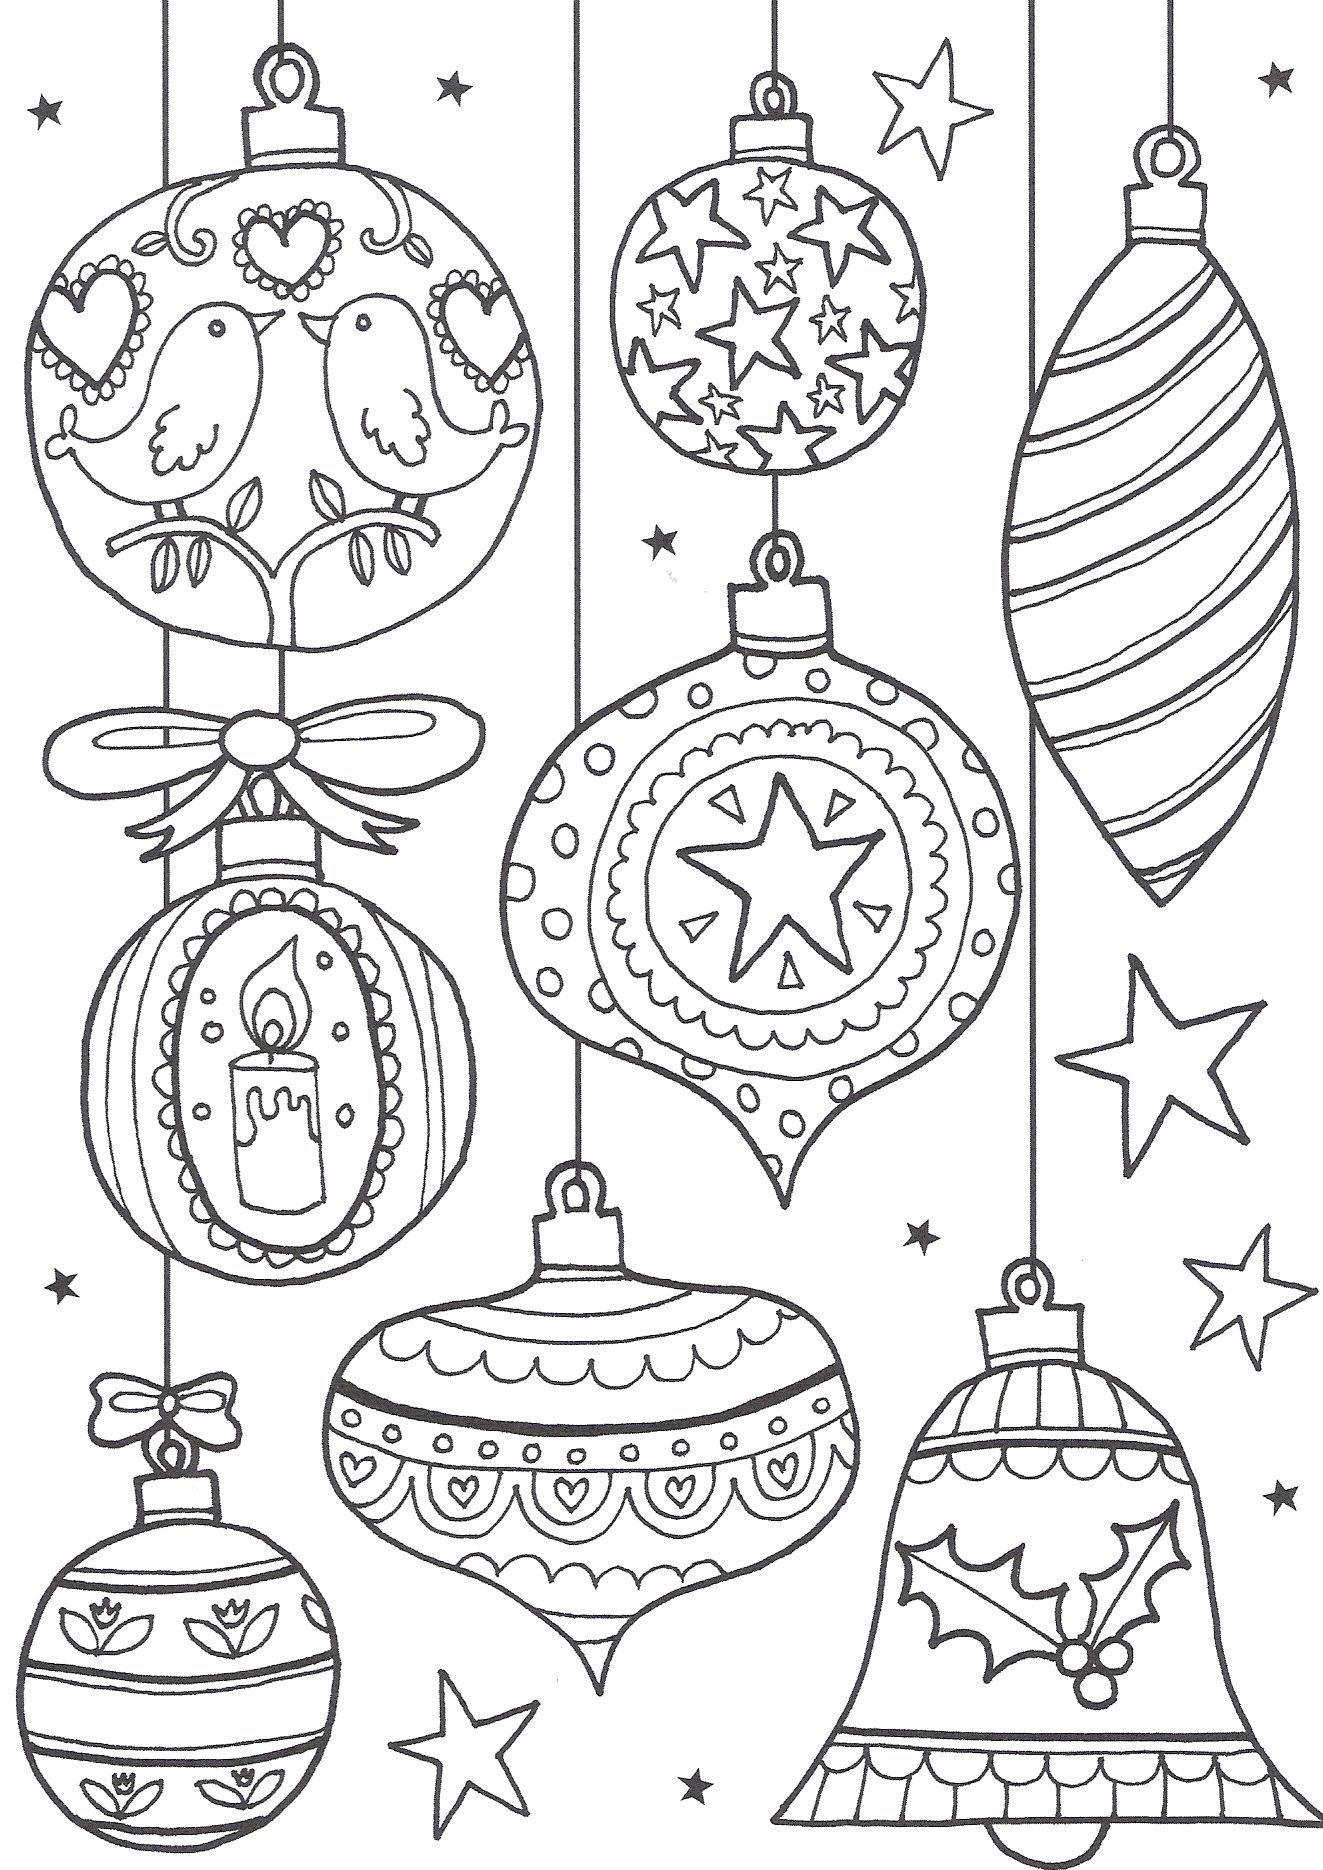 Free Christmas Colouring Pages For Adults – The Ultimate Roundup - Free Printable Christmas Coloring Pages